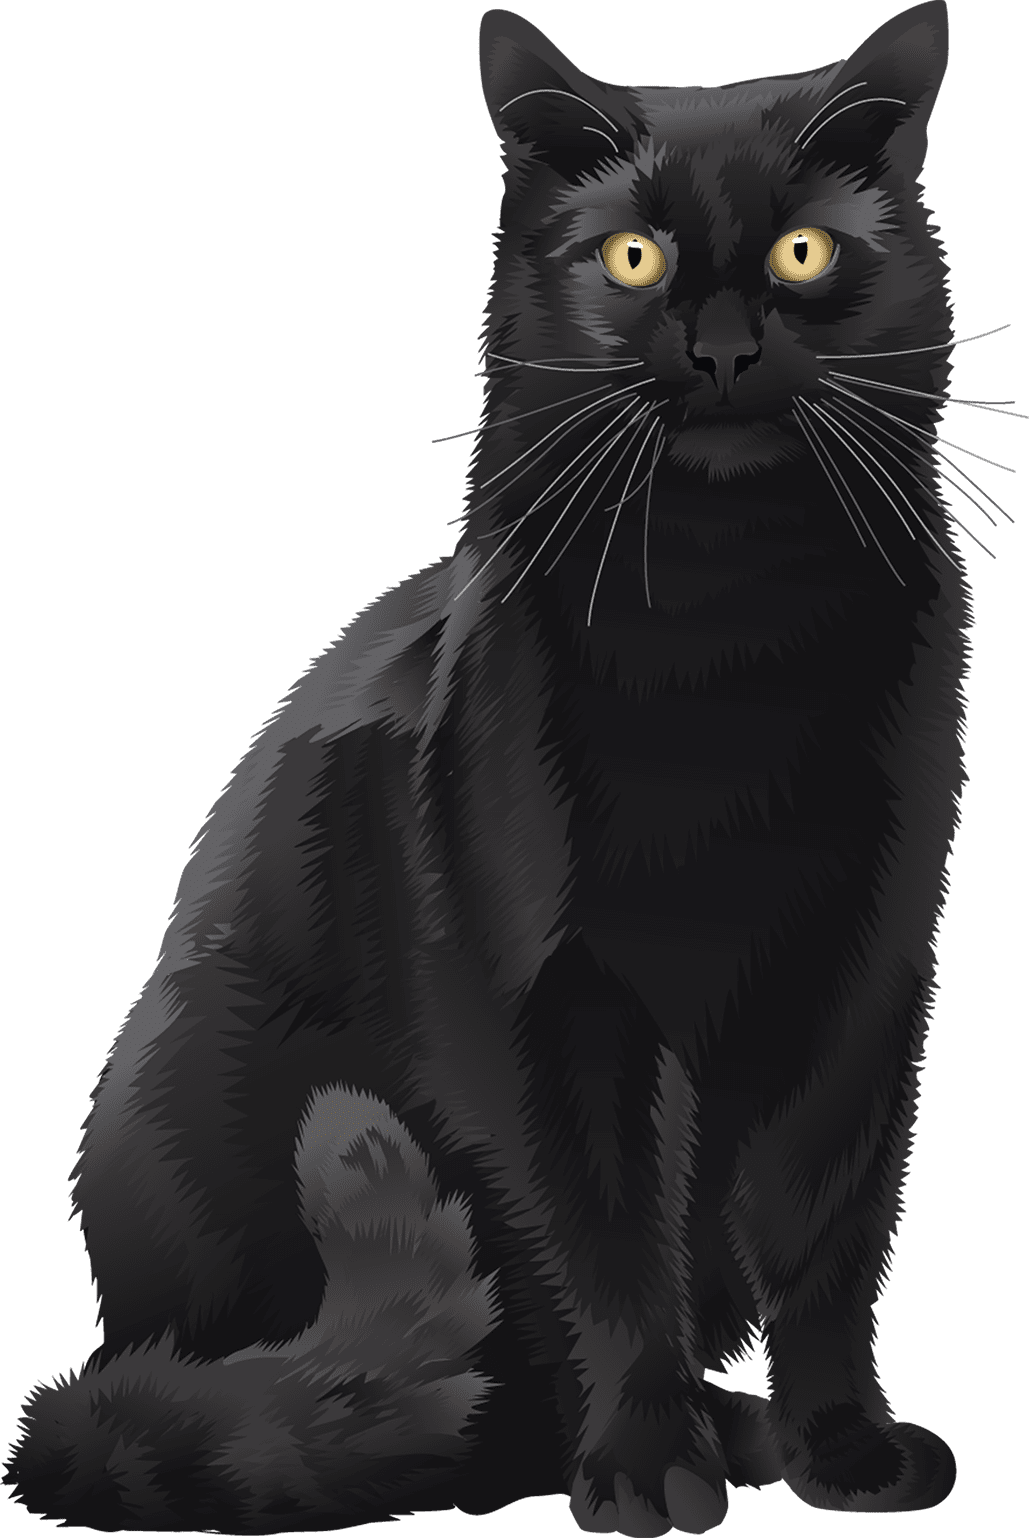 Black Cat T-Shirt - Vibrant Vector